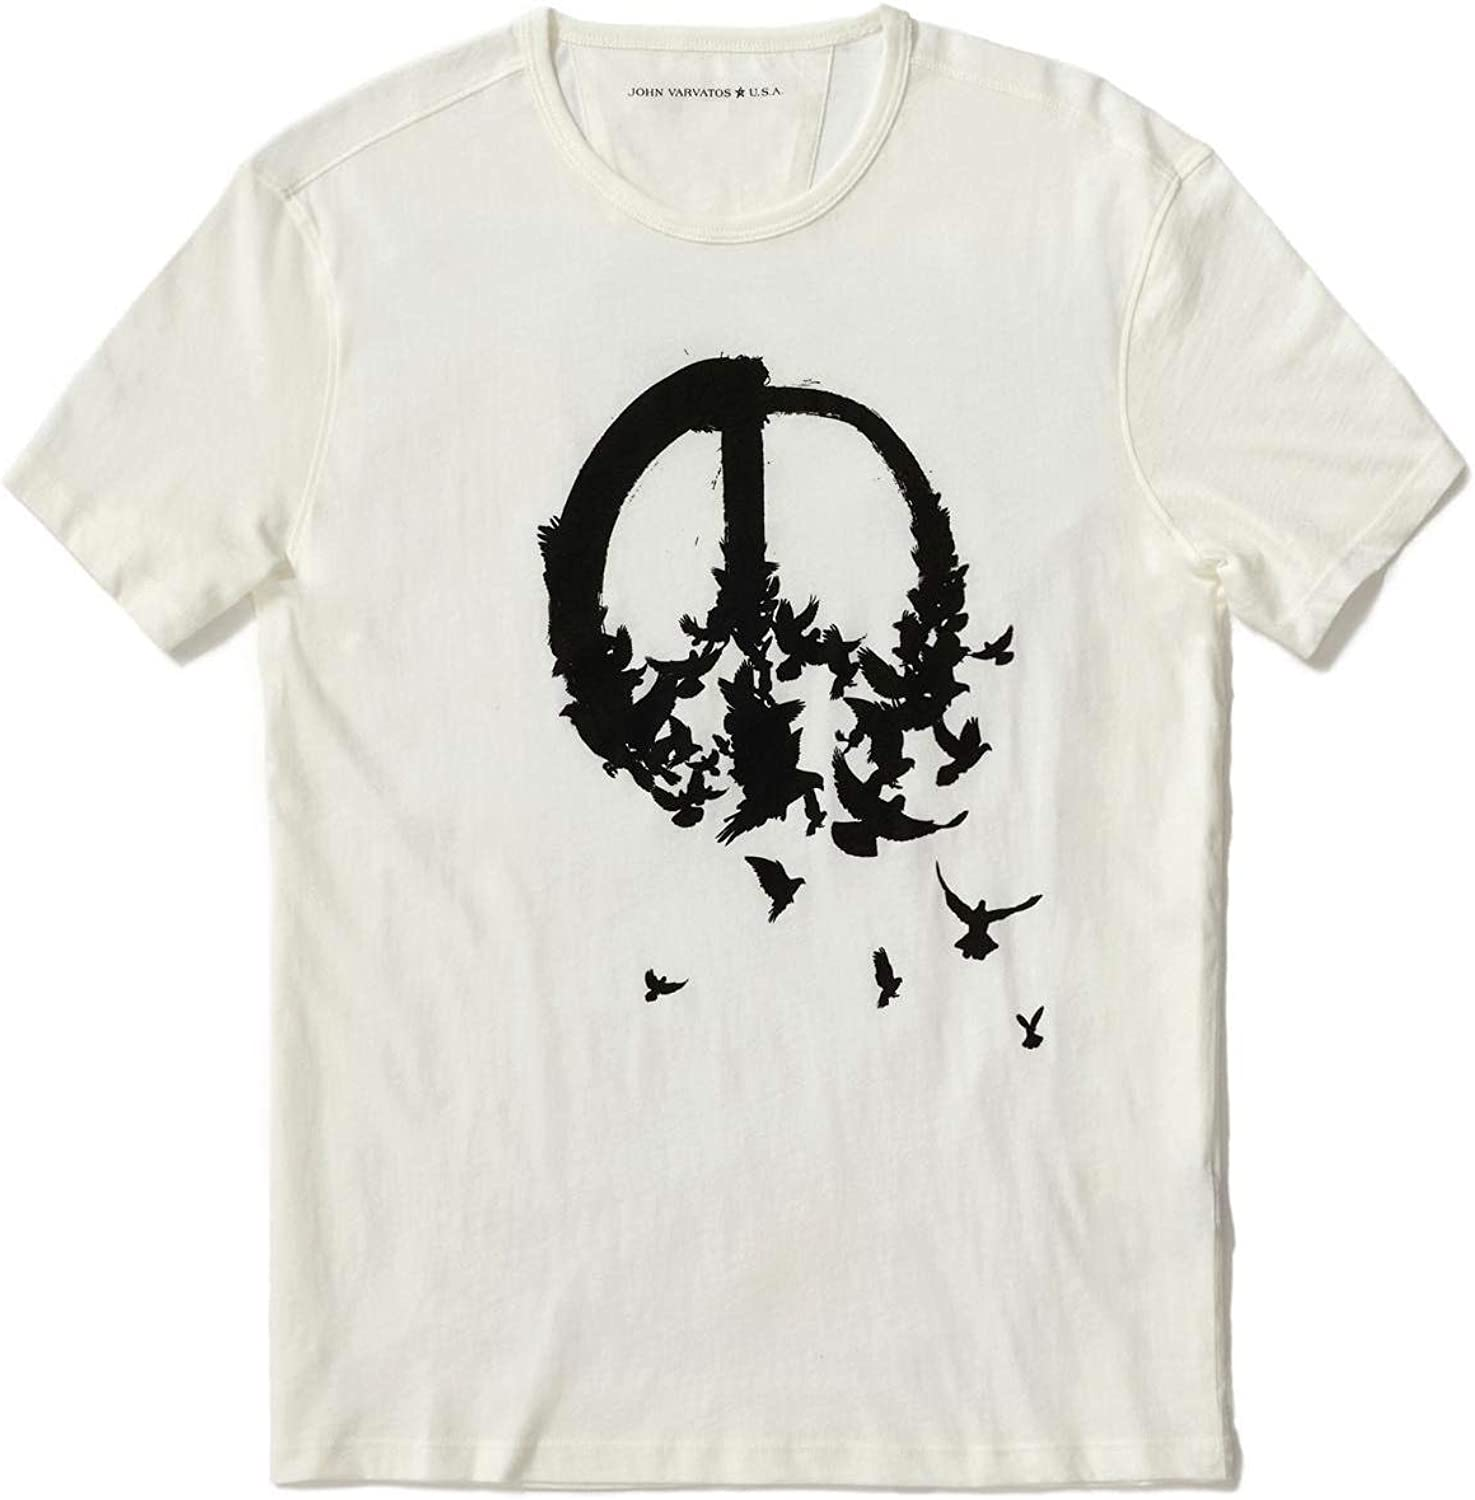 John Varvatos Star USA Mens Short Sleeve Peace Birds Graphic Crew T-Shirt